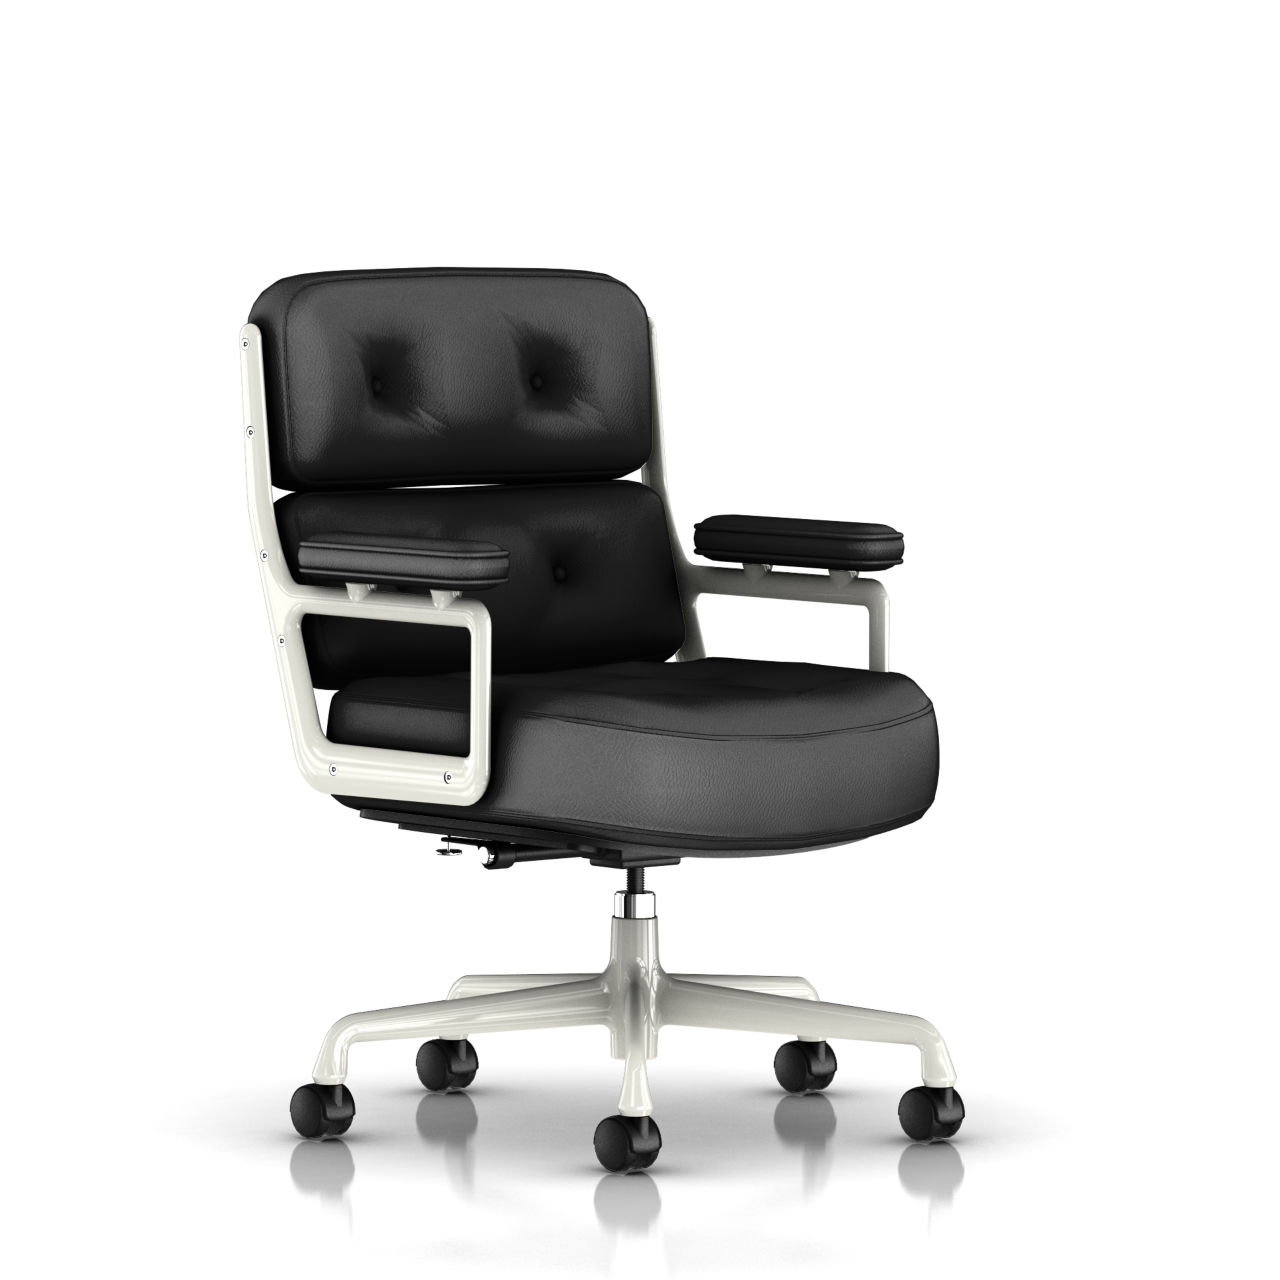 Eames Executive Work Chair in Black Leather by Herman Miller